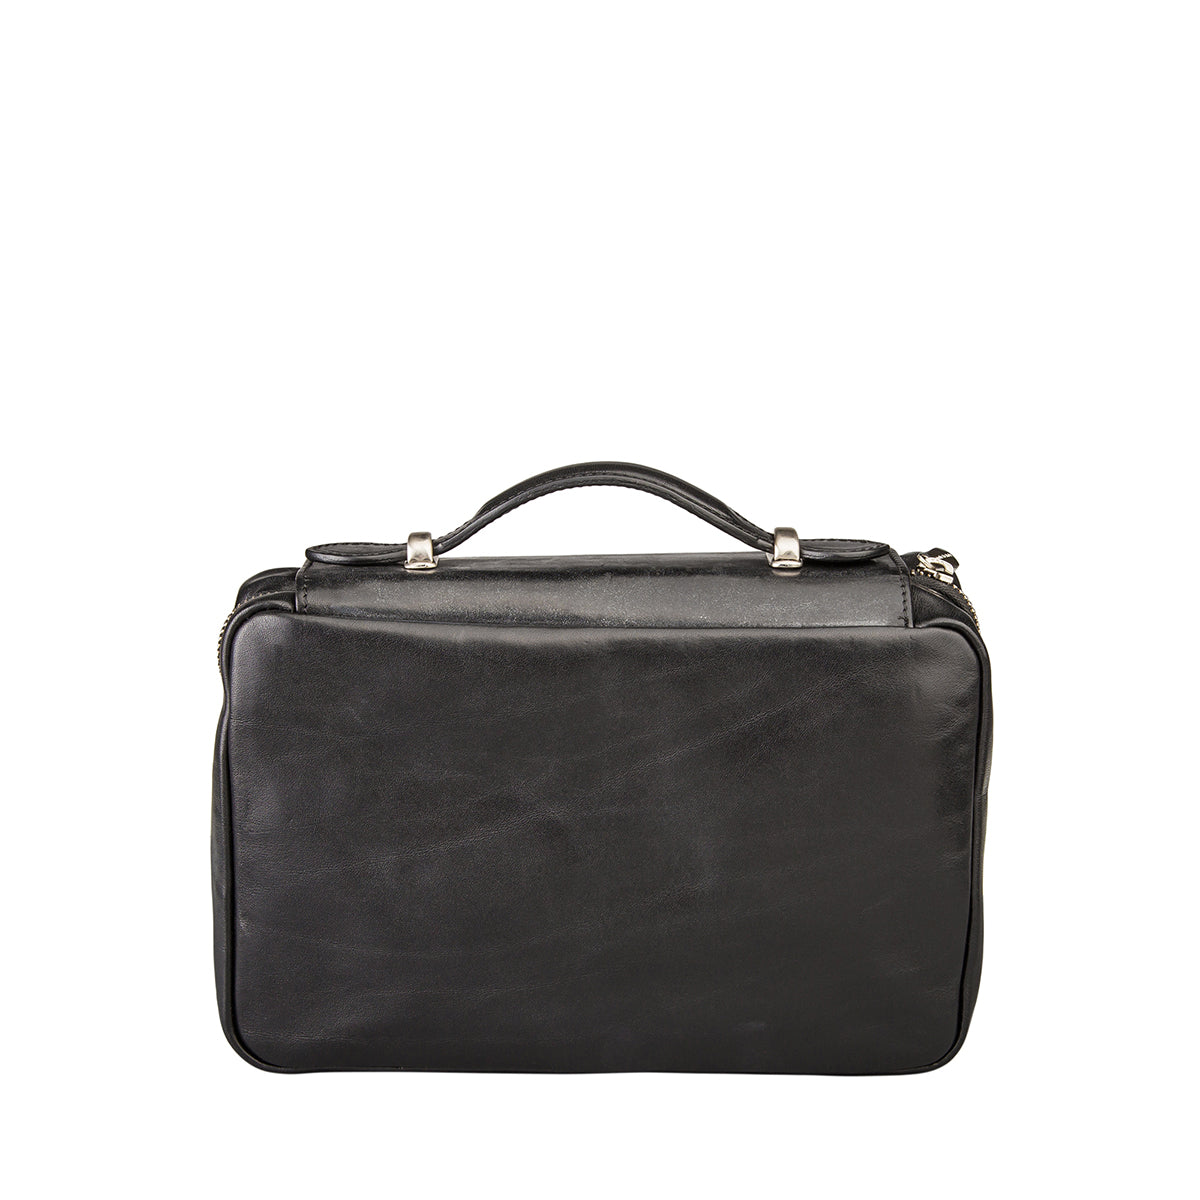 Image 4 of the 'Cascina' Black Veg-Tanned Leather Makeup Case